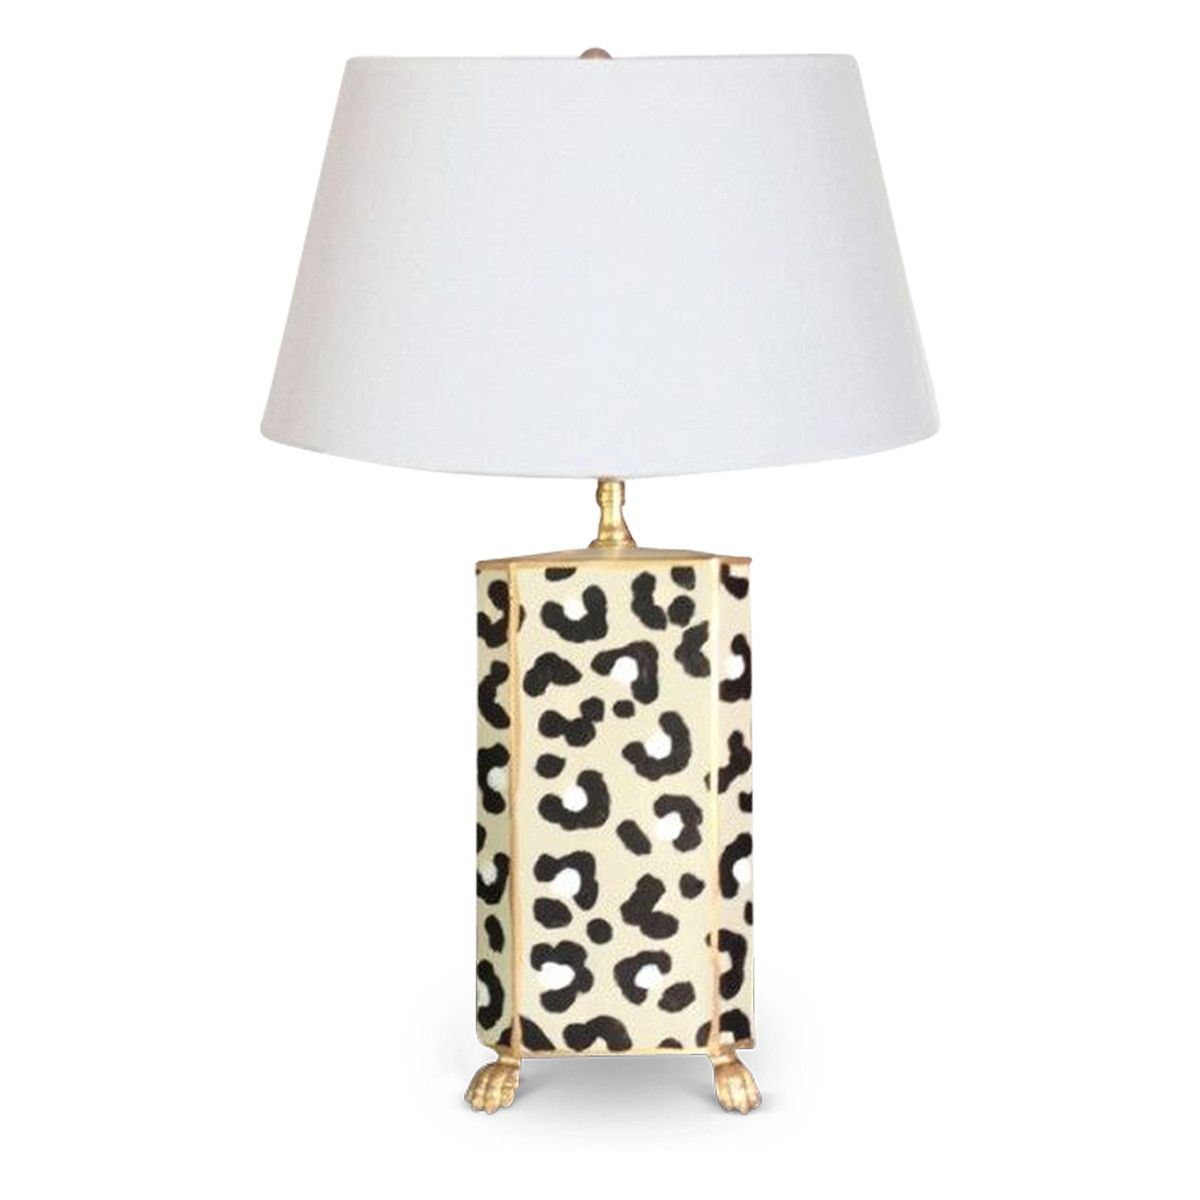 Leopard lamp decorating ideas pinterest white leopard this hand painted white leopard lamp with little gold feet is the perfect animal print accent to your bedroom living room or office geotapseo Gallery